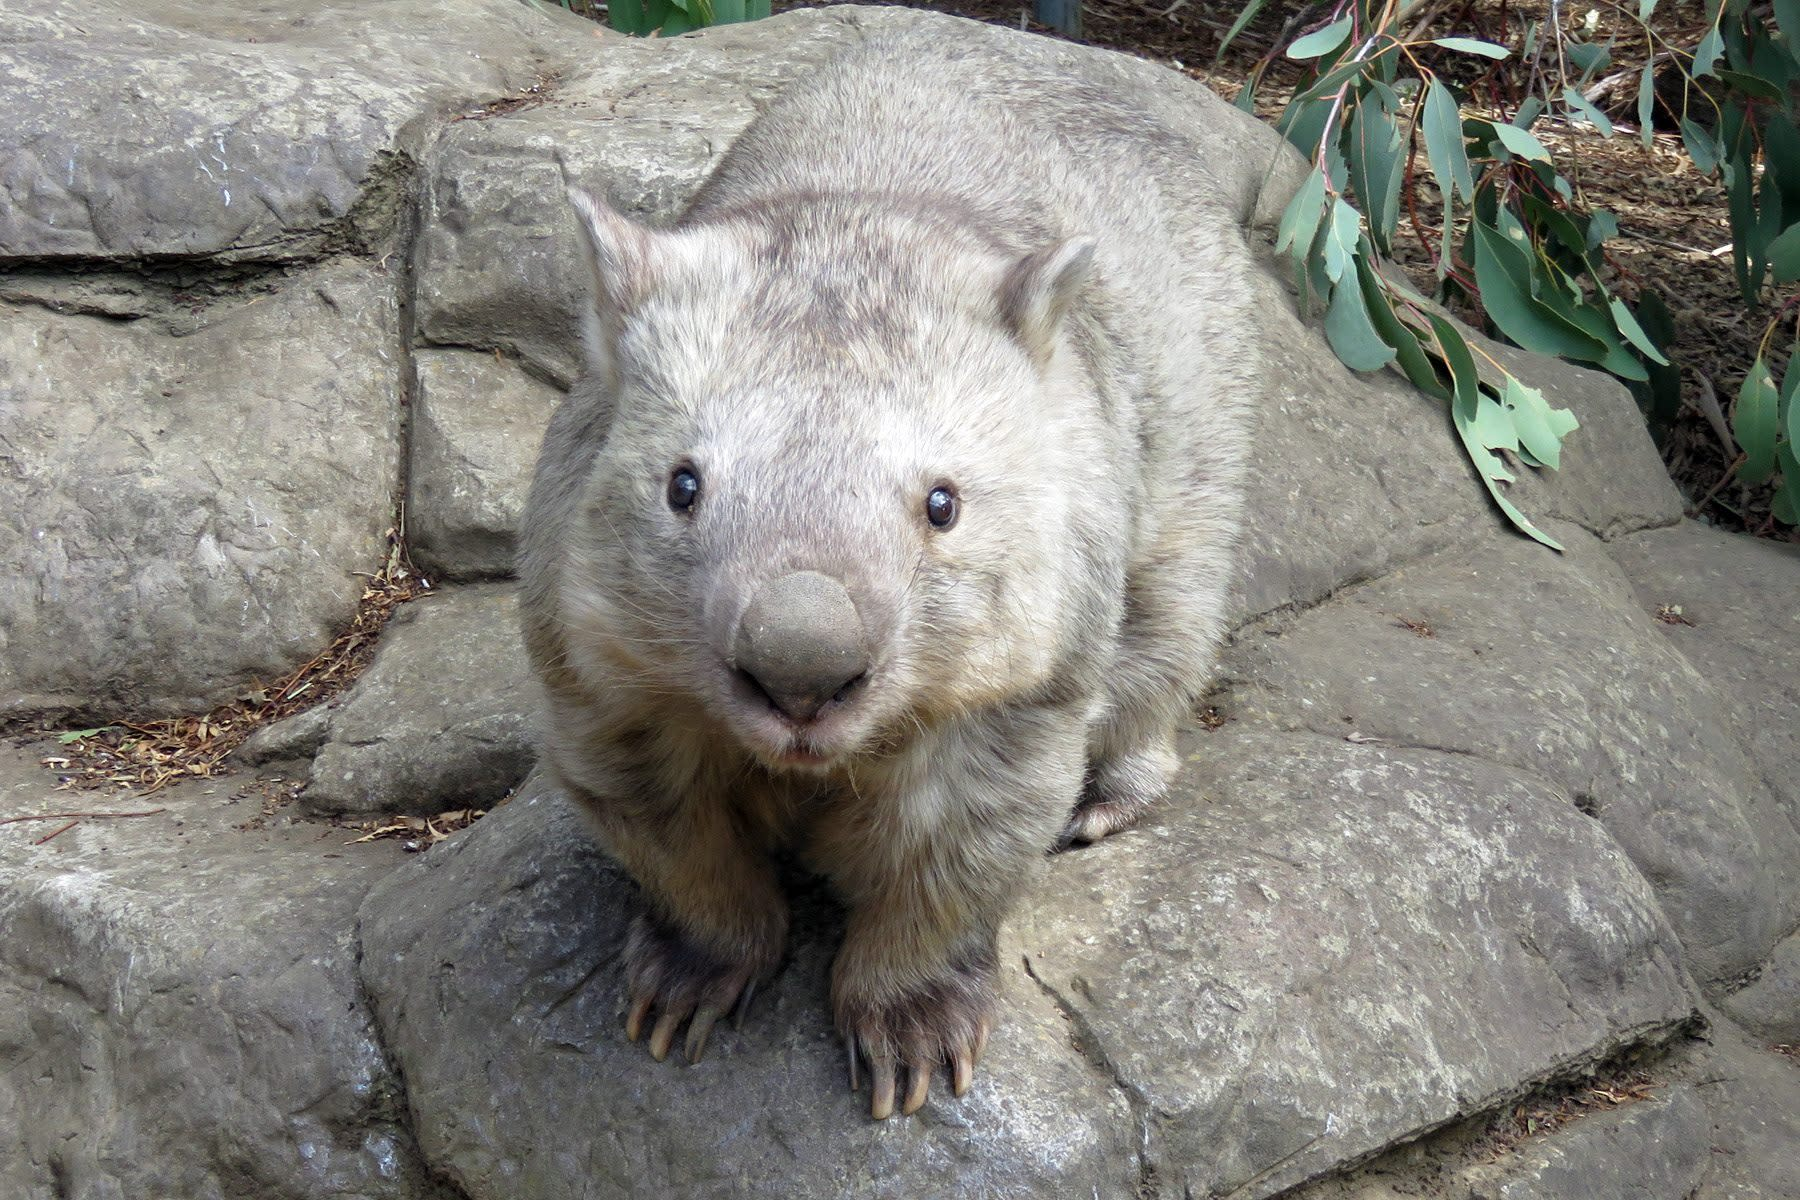 Zoo heartbroken over death of world's oldest wombat - but her legacy will live on